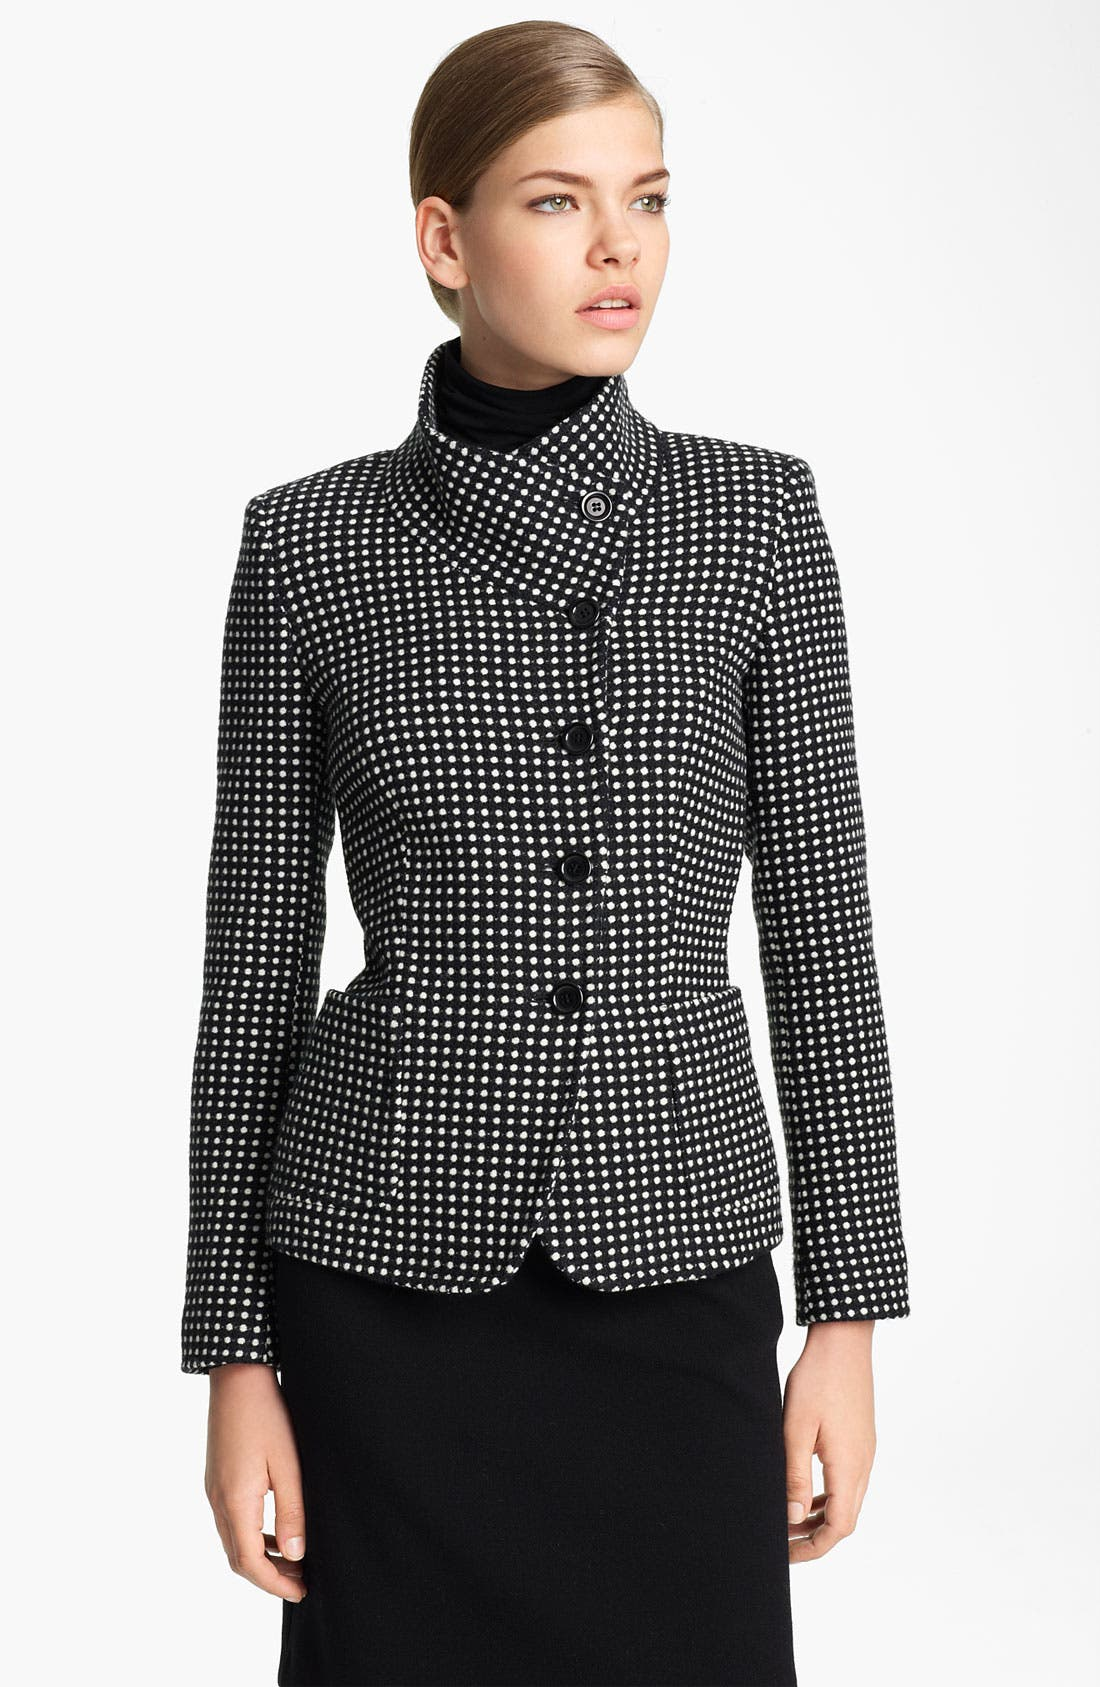 Alternate Image 1 Selected - Max Mara 'Helier' Asymmetrical Wool & Cashmere Jacket